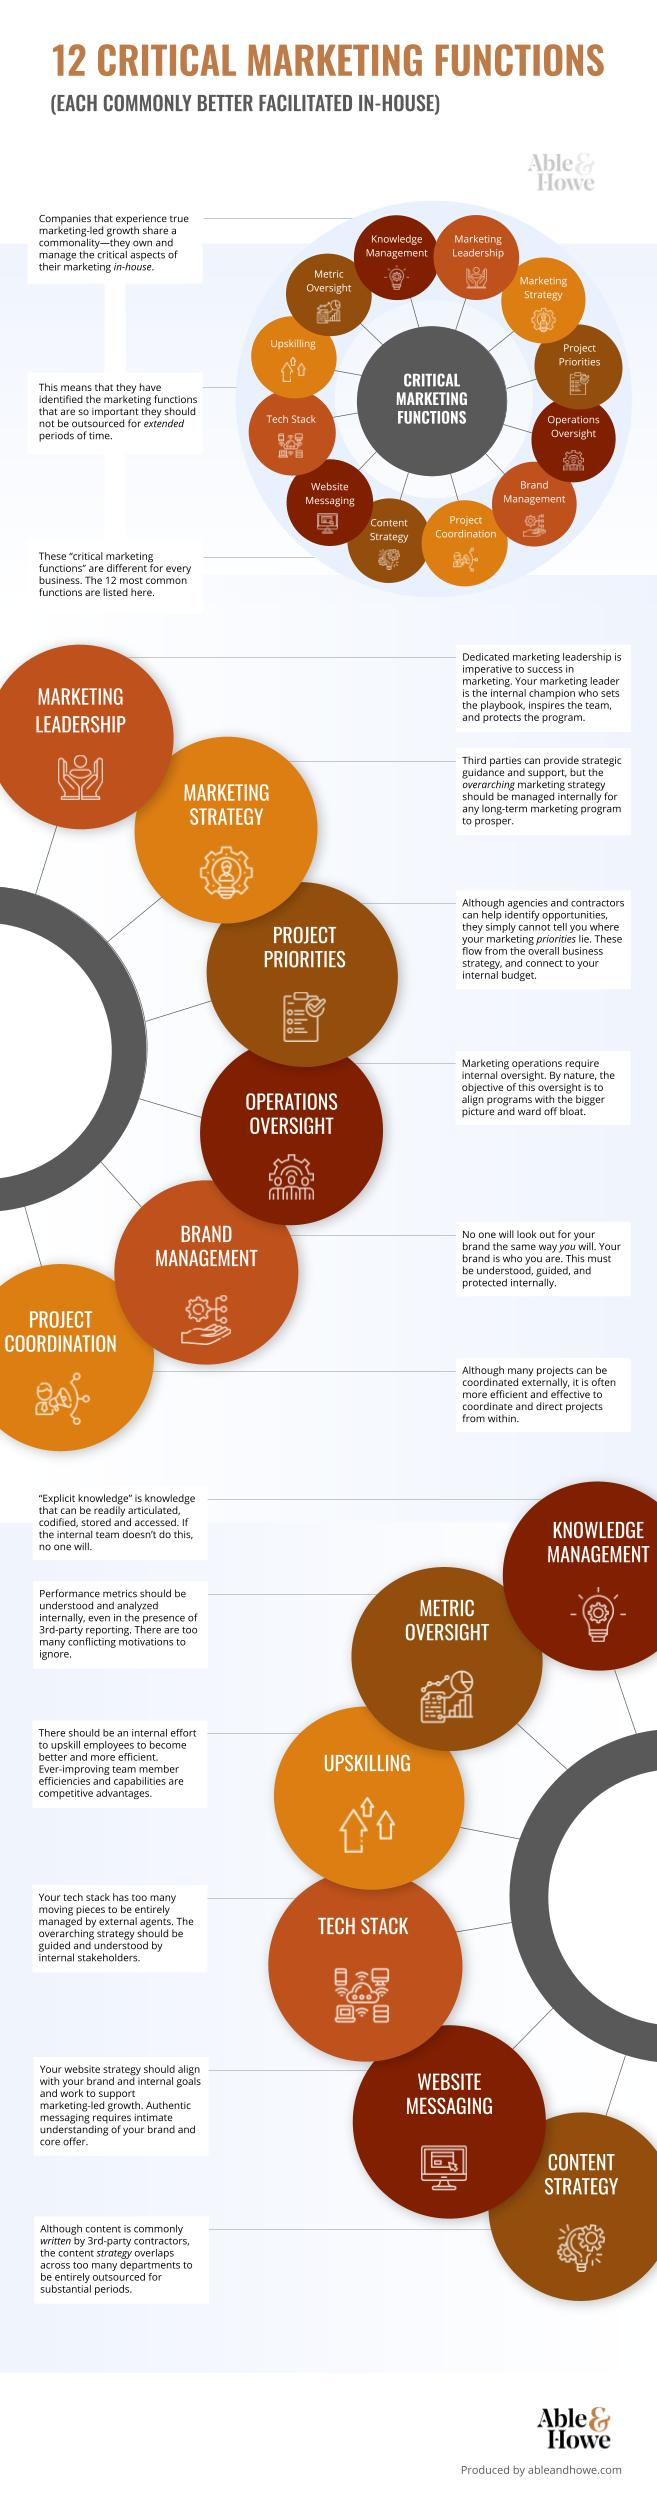 12 Critical Marketing Functions - An Able & Howe Infographic